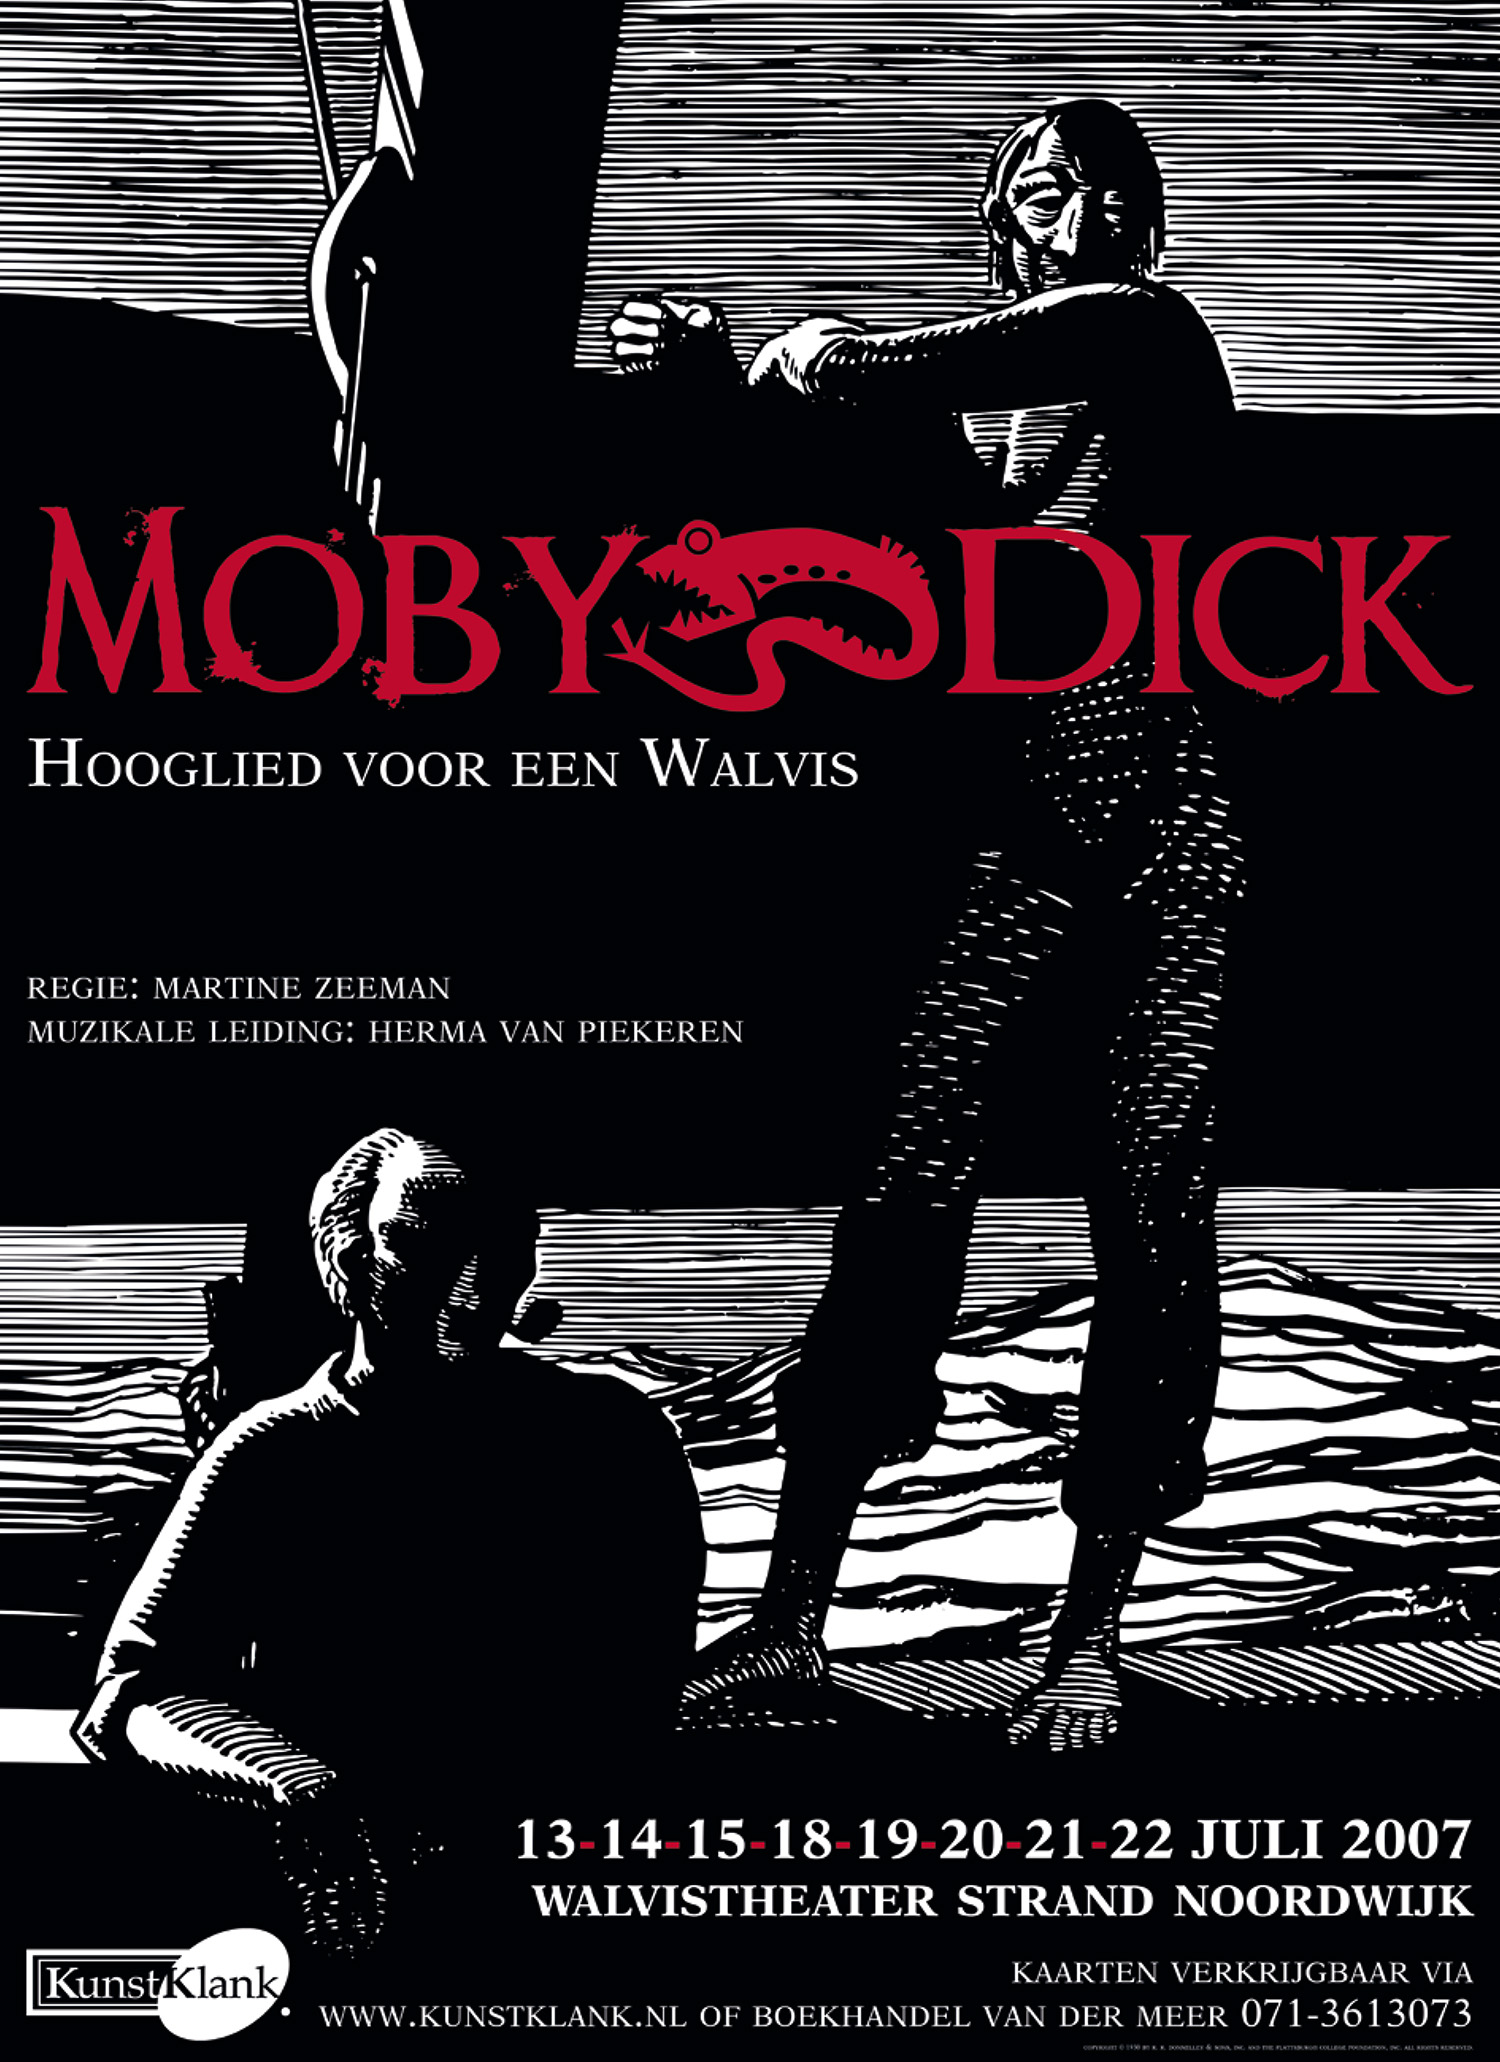 Opinion moby dick noordwijk